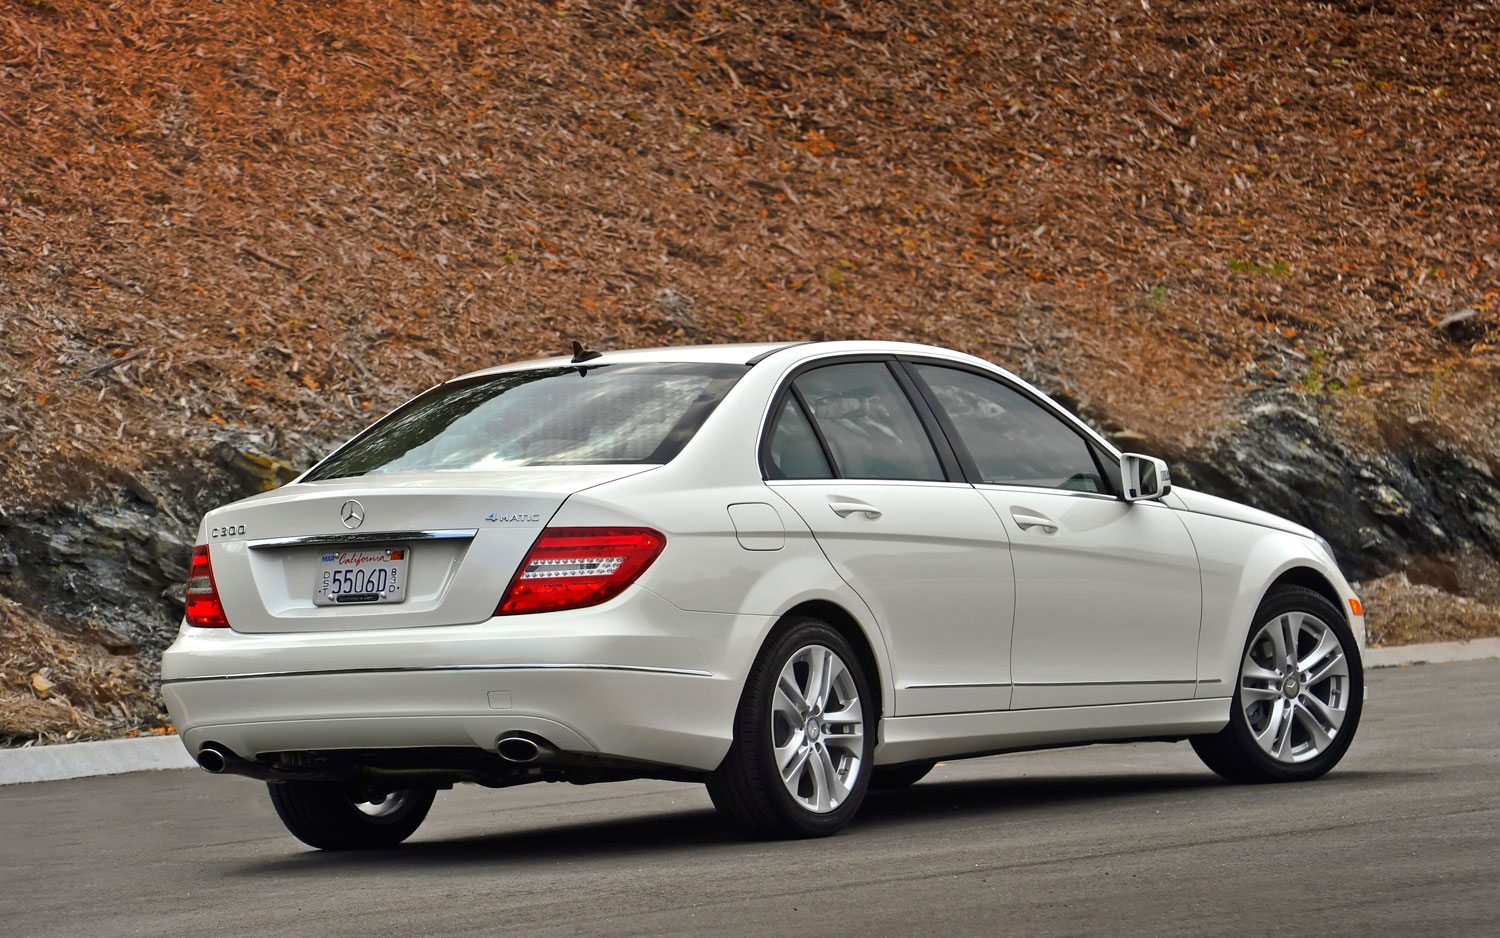 used matane inventory mercedes sdn owned class c kia vehicle benz en quebec in pre